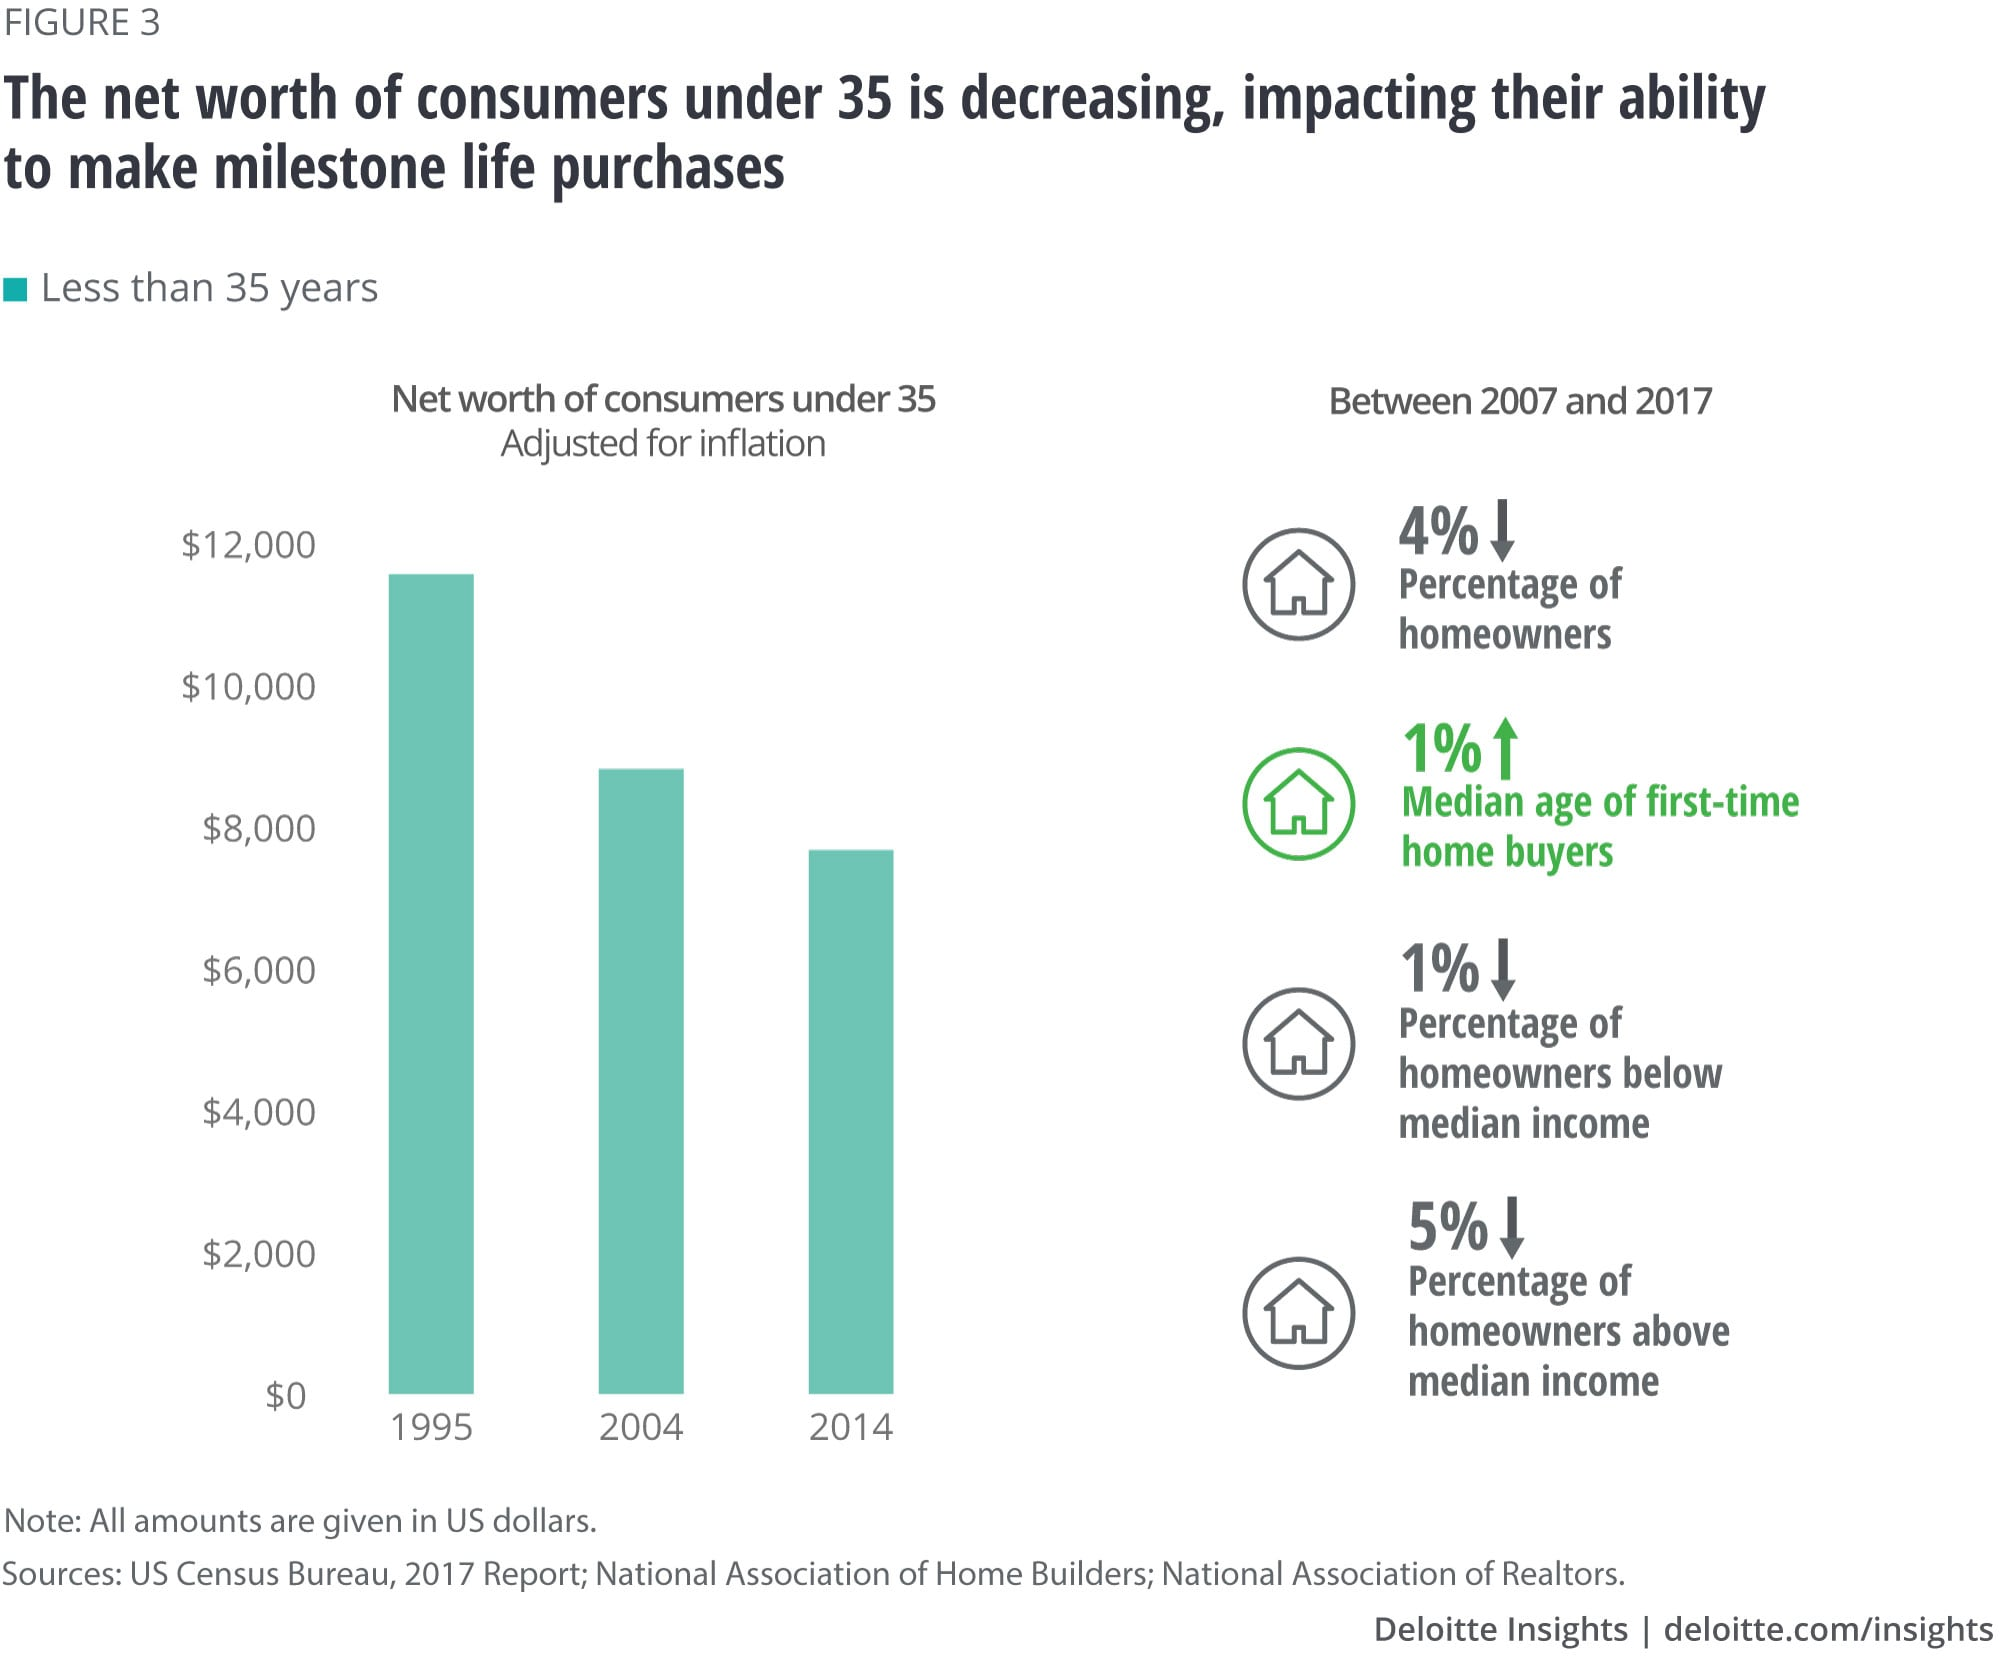 The net worth of consumers under 35 is decreasing, impacting their ability to make milestone life purchases